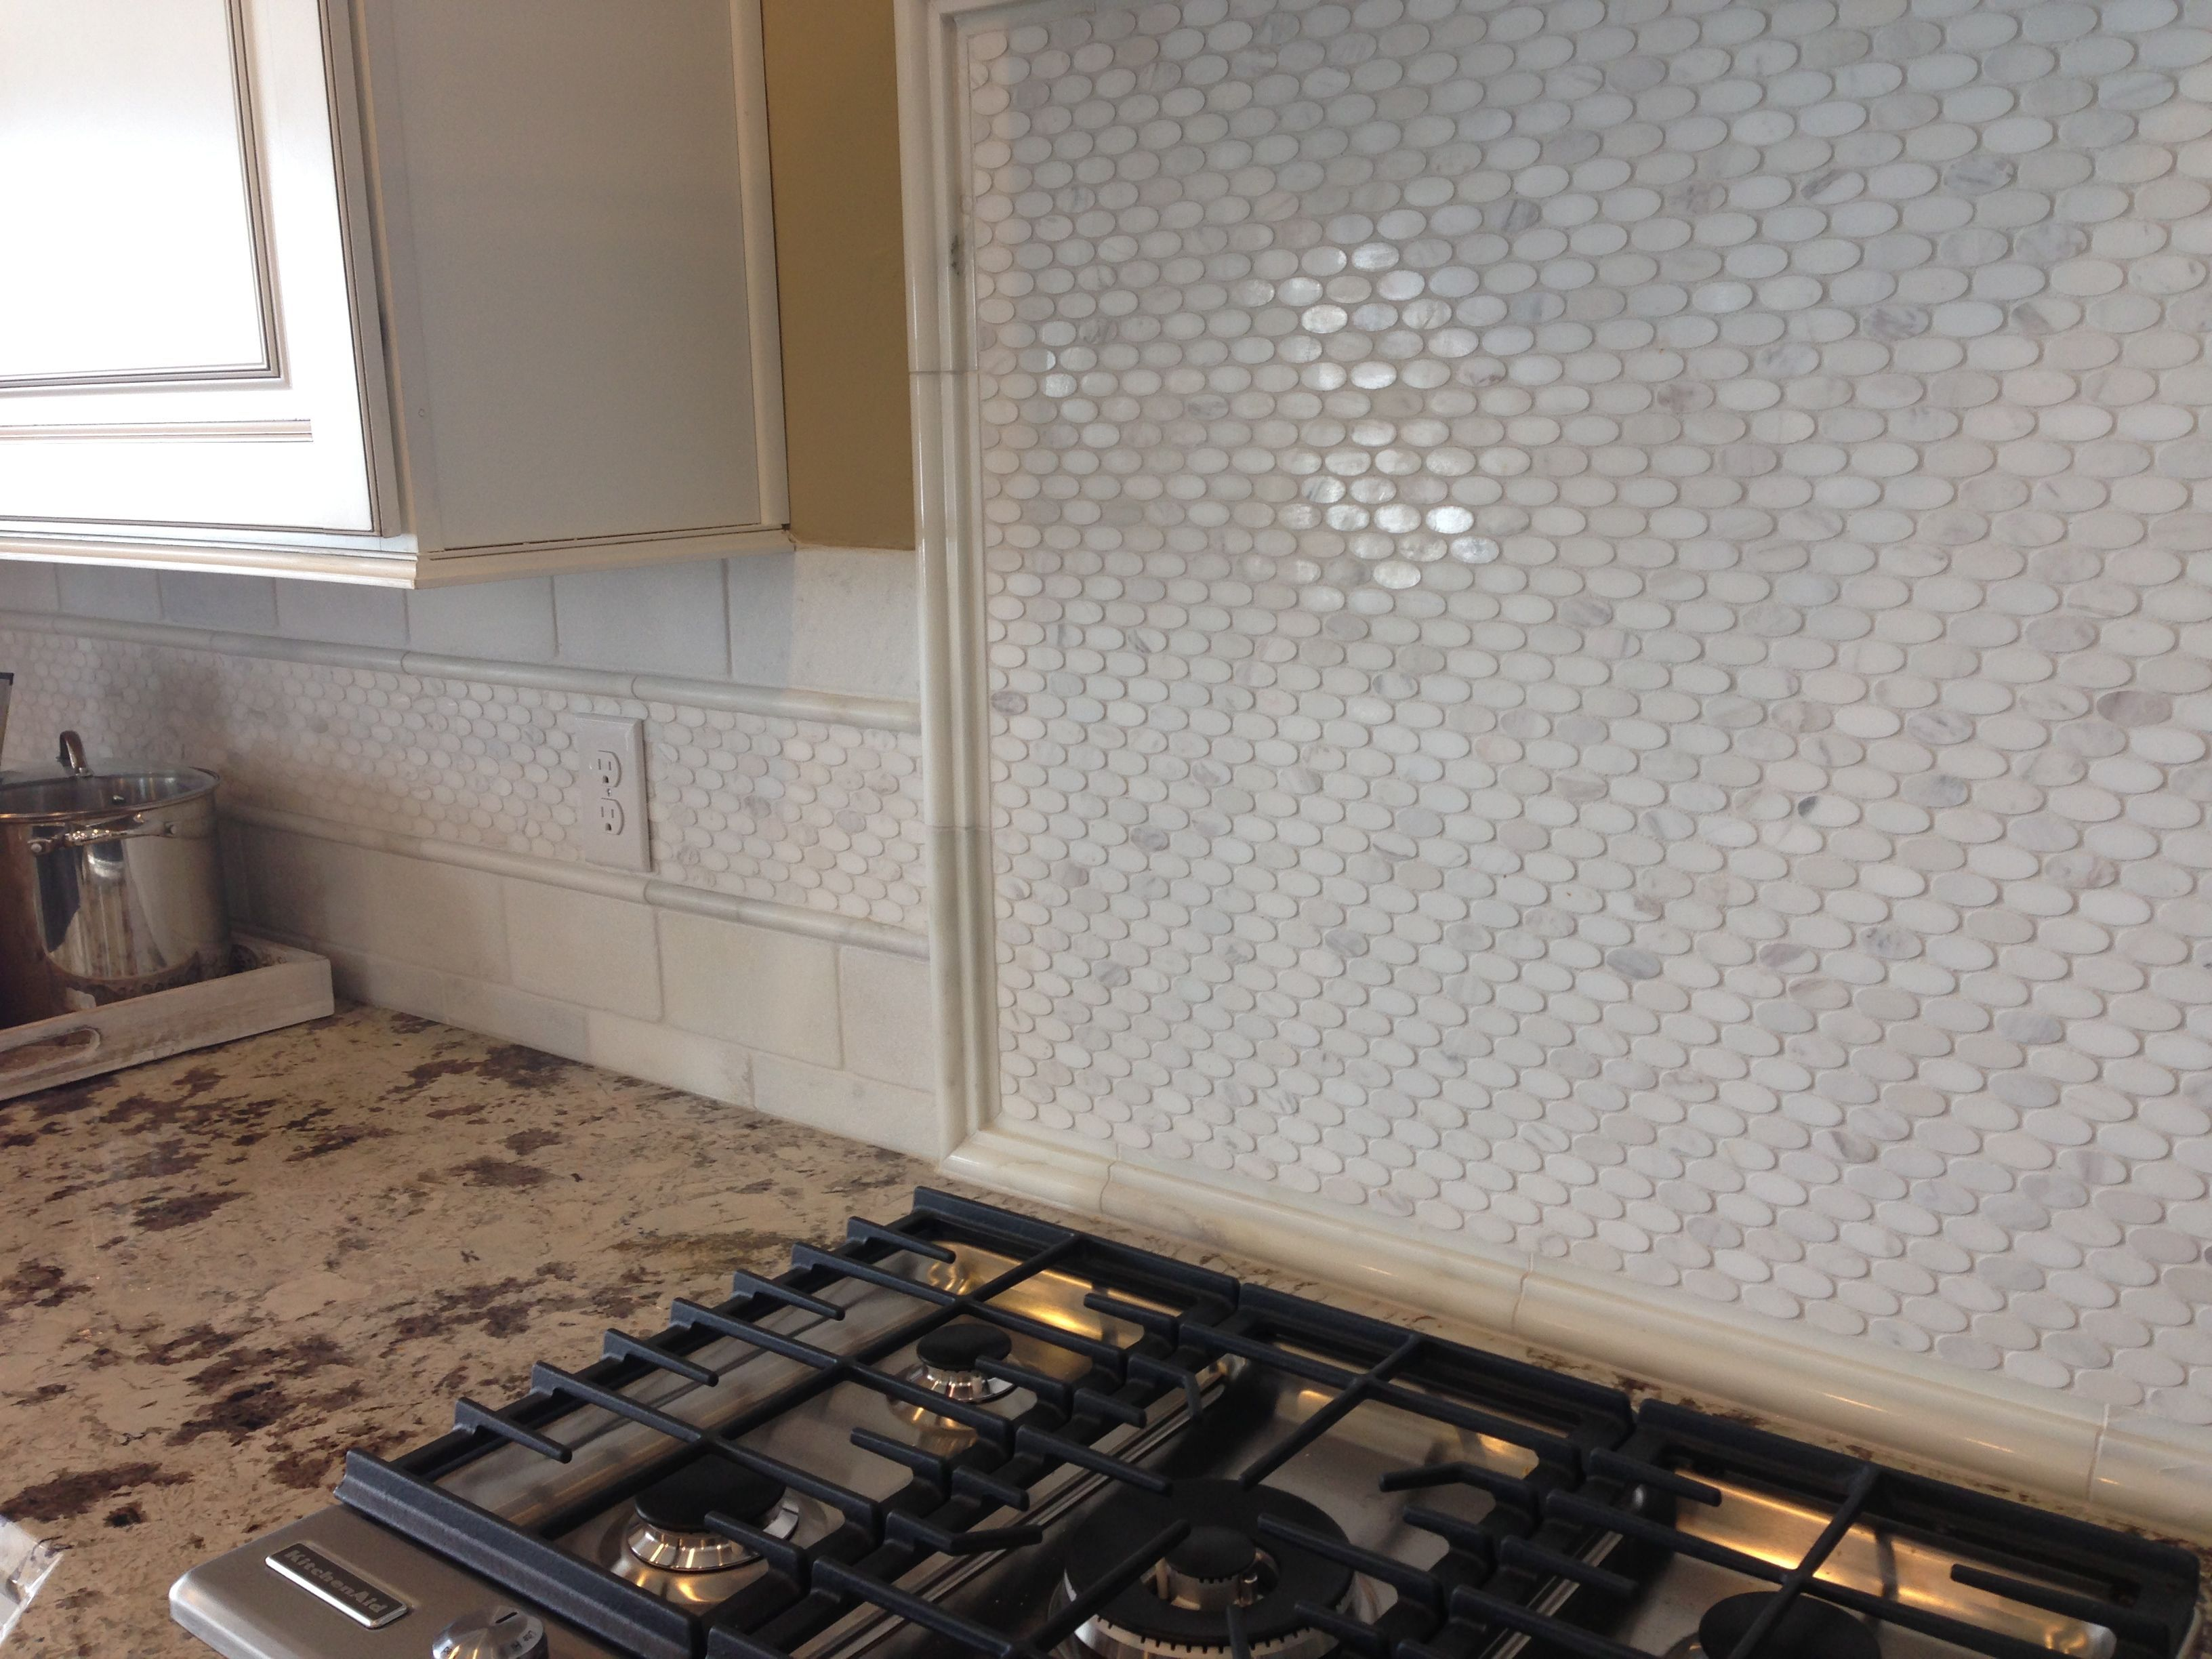 Backsplash Tile Patterns For Easy Cleaning Countertops Idea